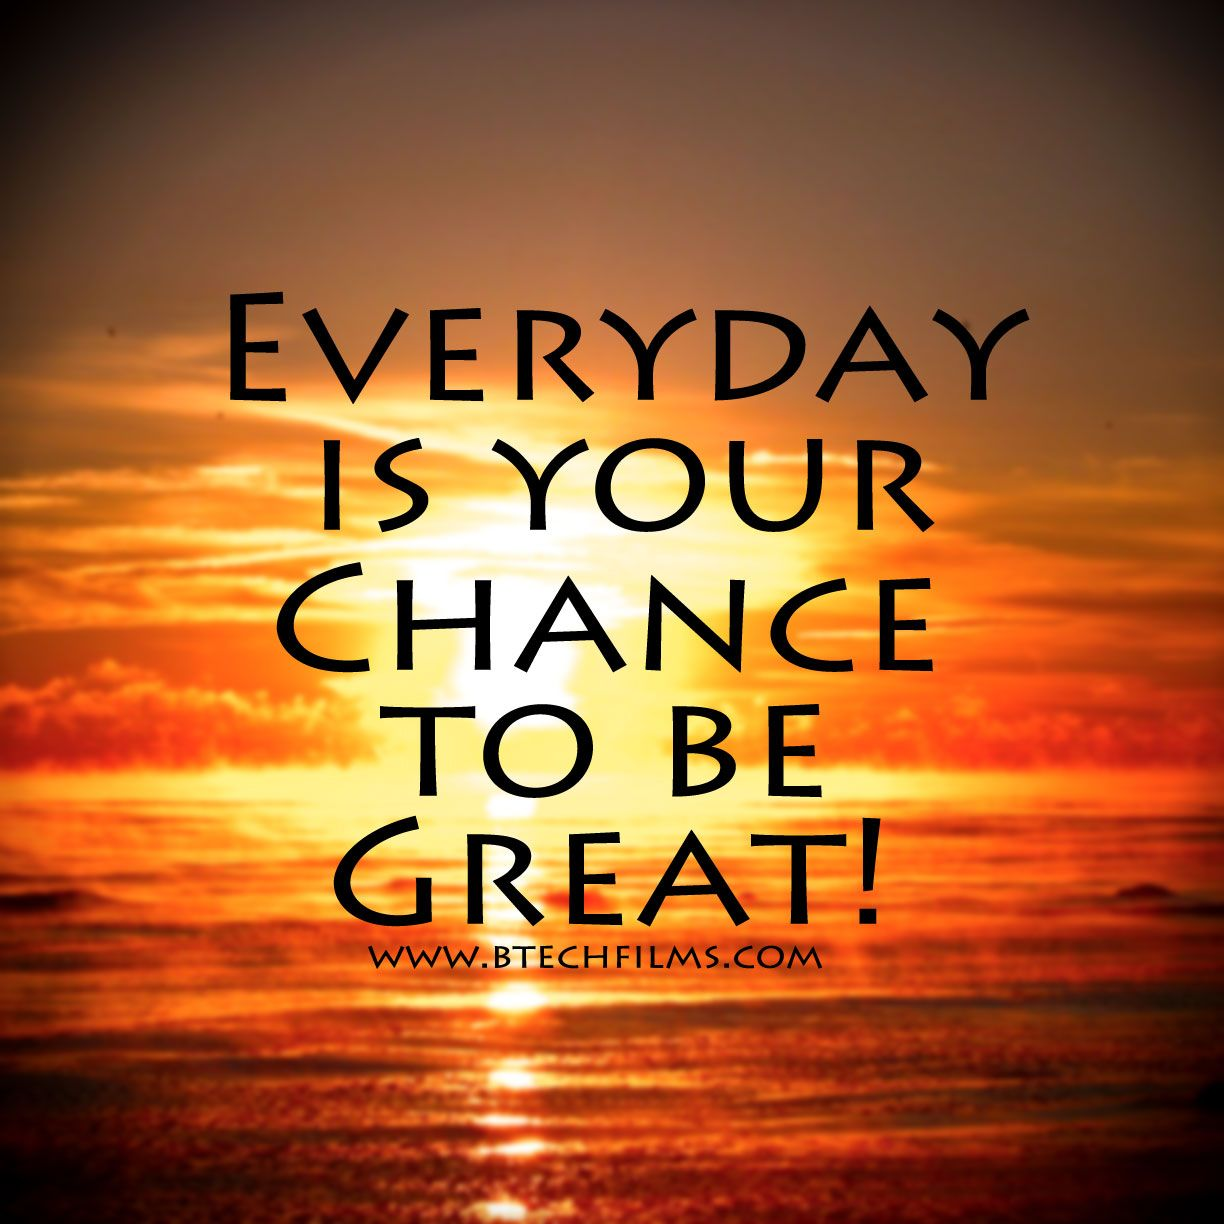 3b4bbed5ae19ee11a231681249e15d15 everyday is your chance to be great motivational meme